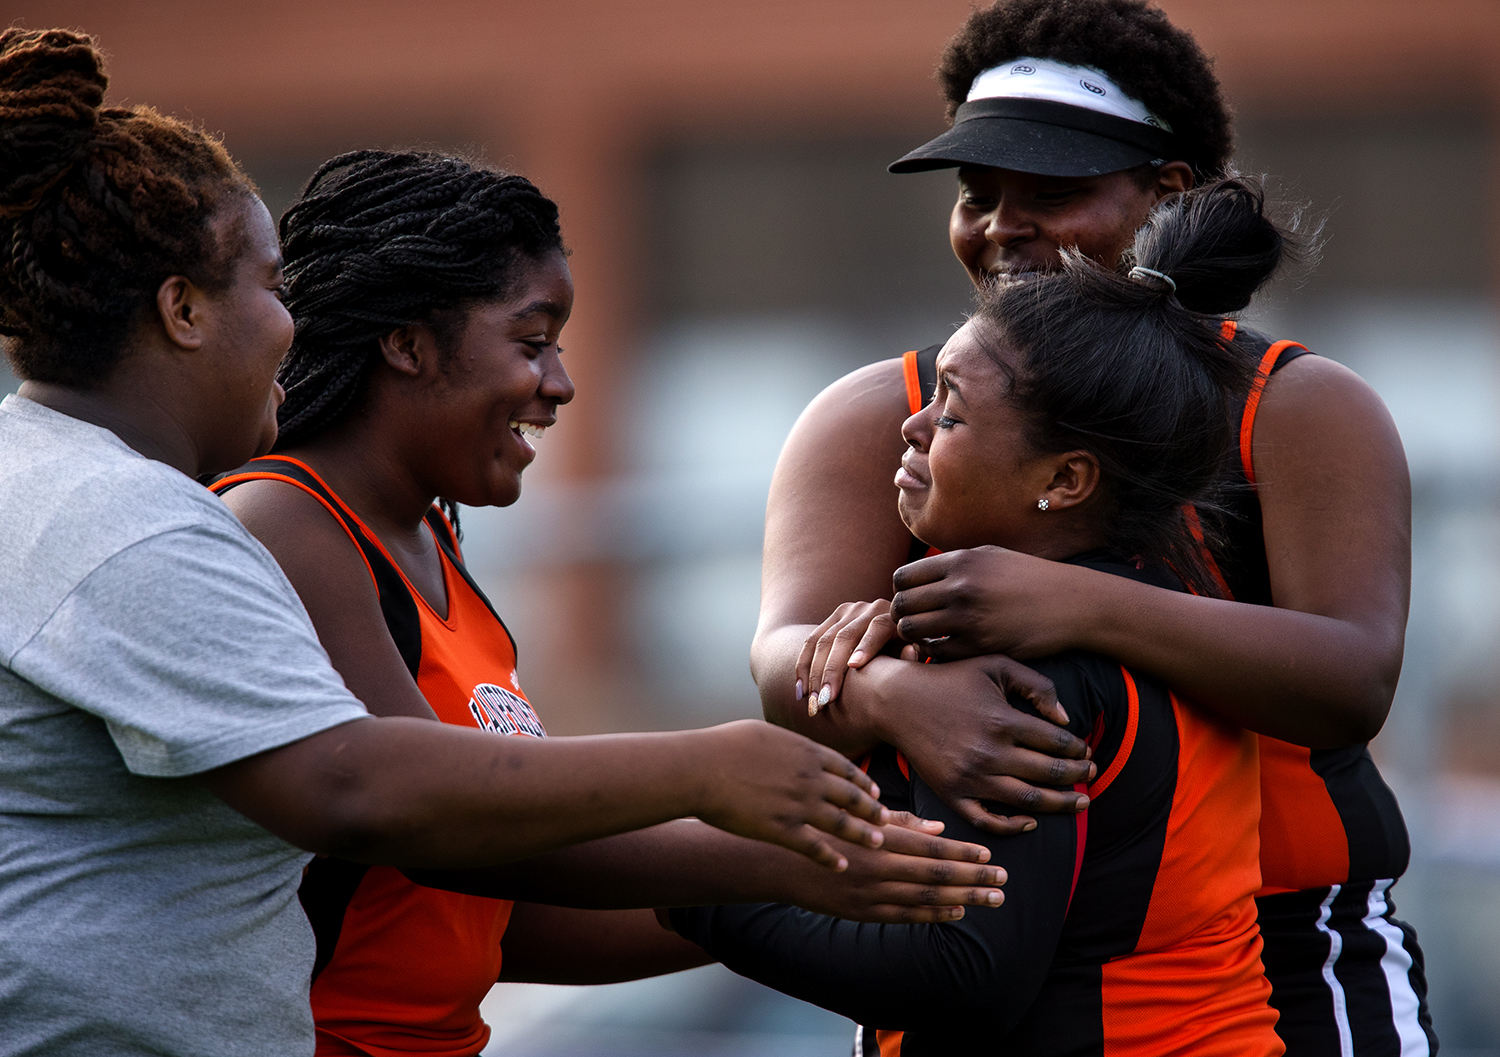 Velencia Johnson's Lanpheir High teammates surround her when she breaks down in tears after learning her distance of 104 feet 9 inches in the discus was her personal best of the season and good for first place during the Girls City Meet at Memorial Stadium April 25. Ted Schurter/The State Journal-Register